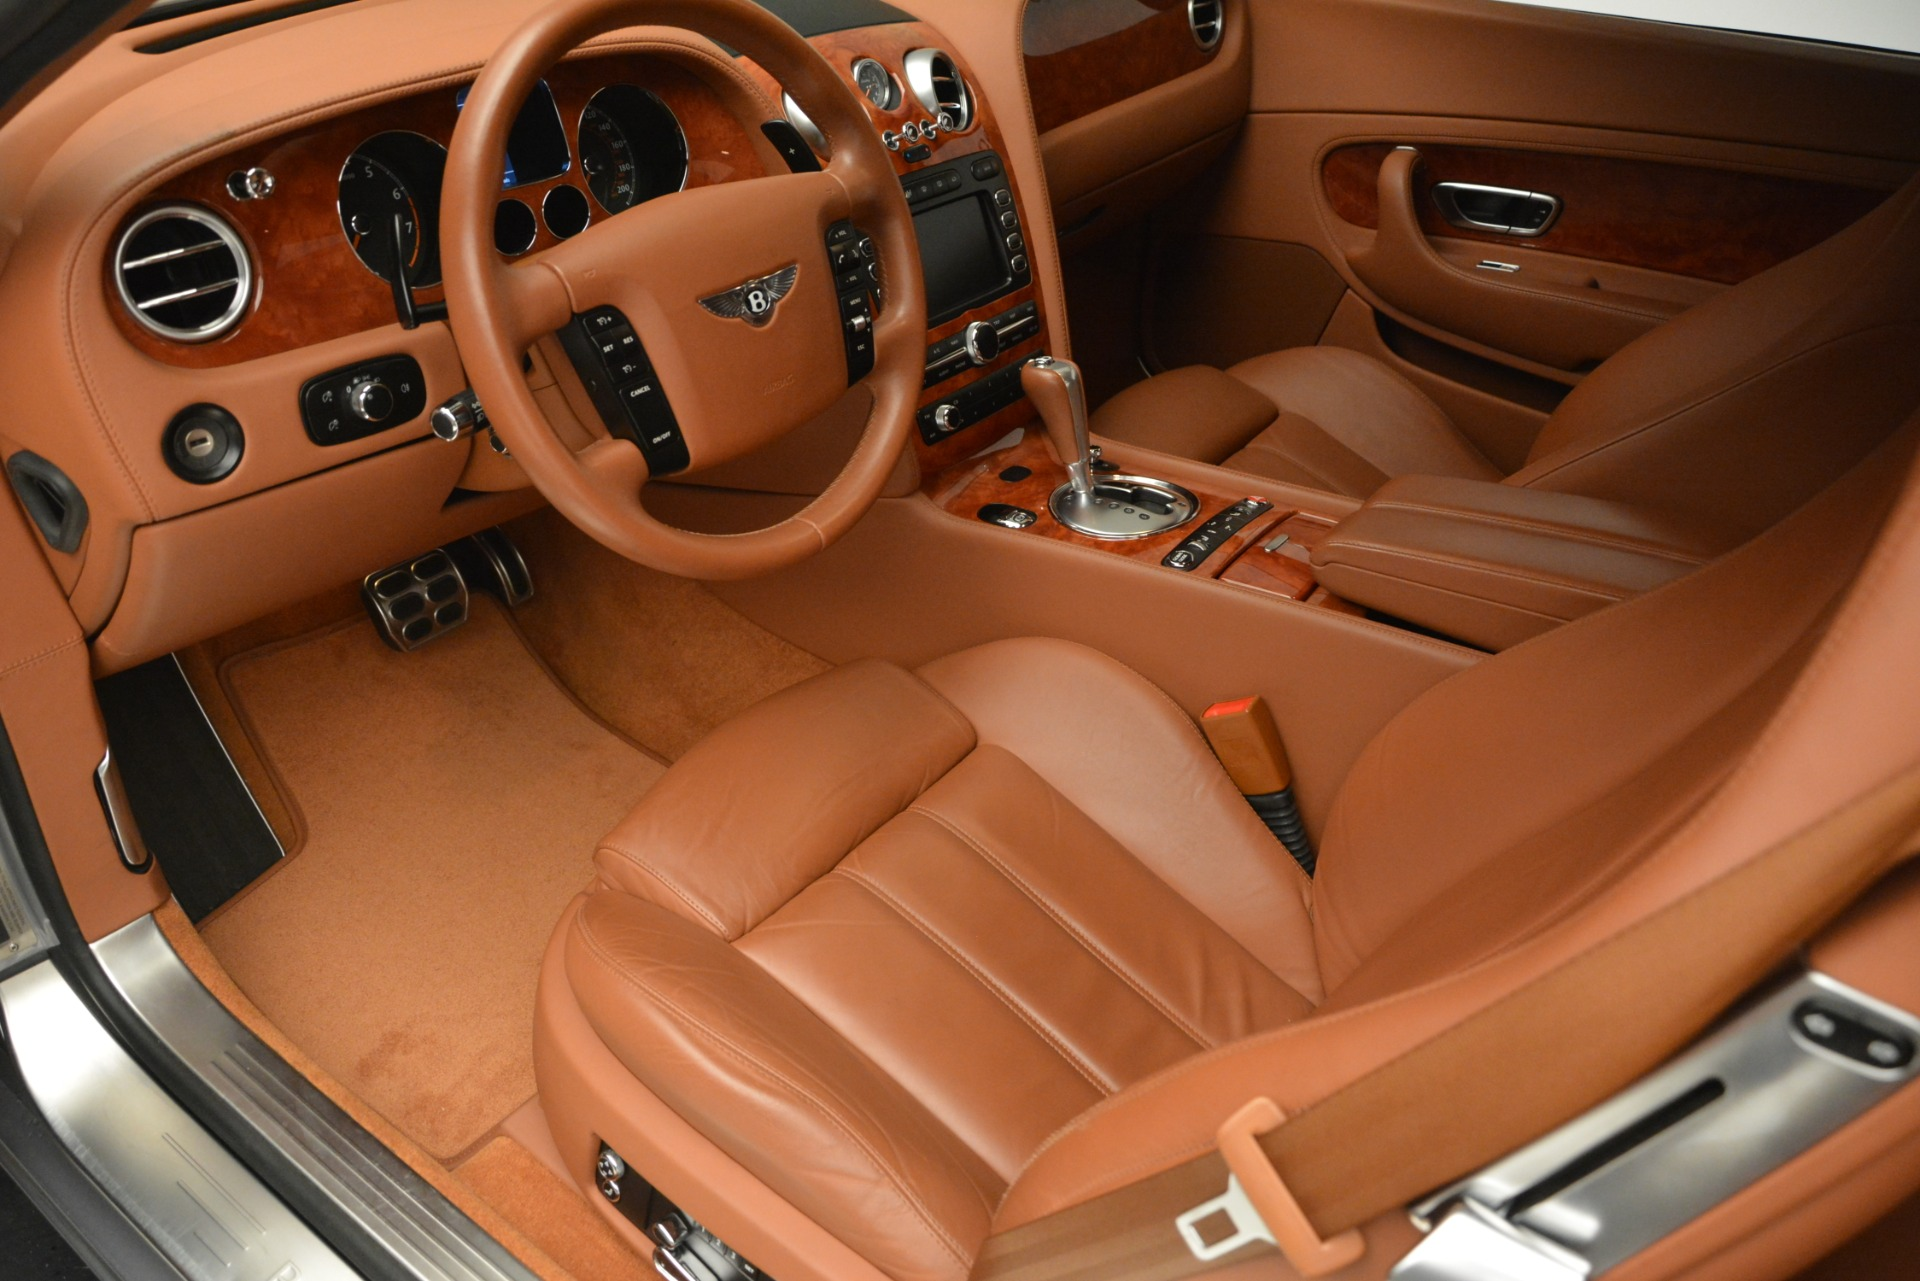 Used 2005 Bentley Continental GT GT Turbo For Sale In Greenwich, CT 2726_p17